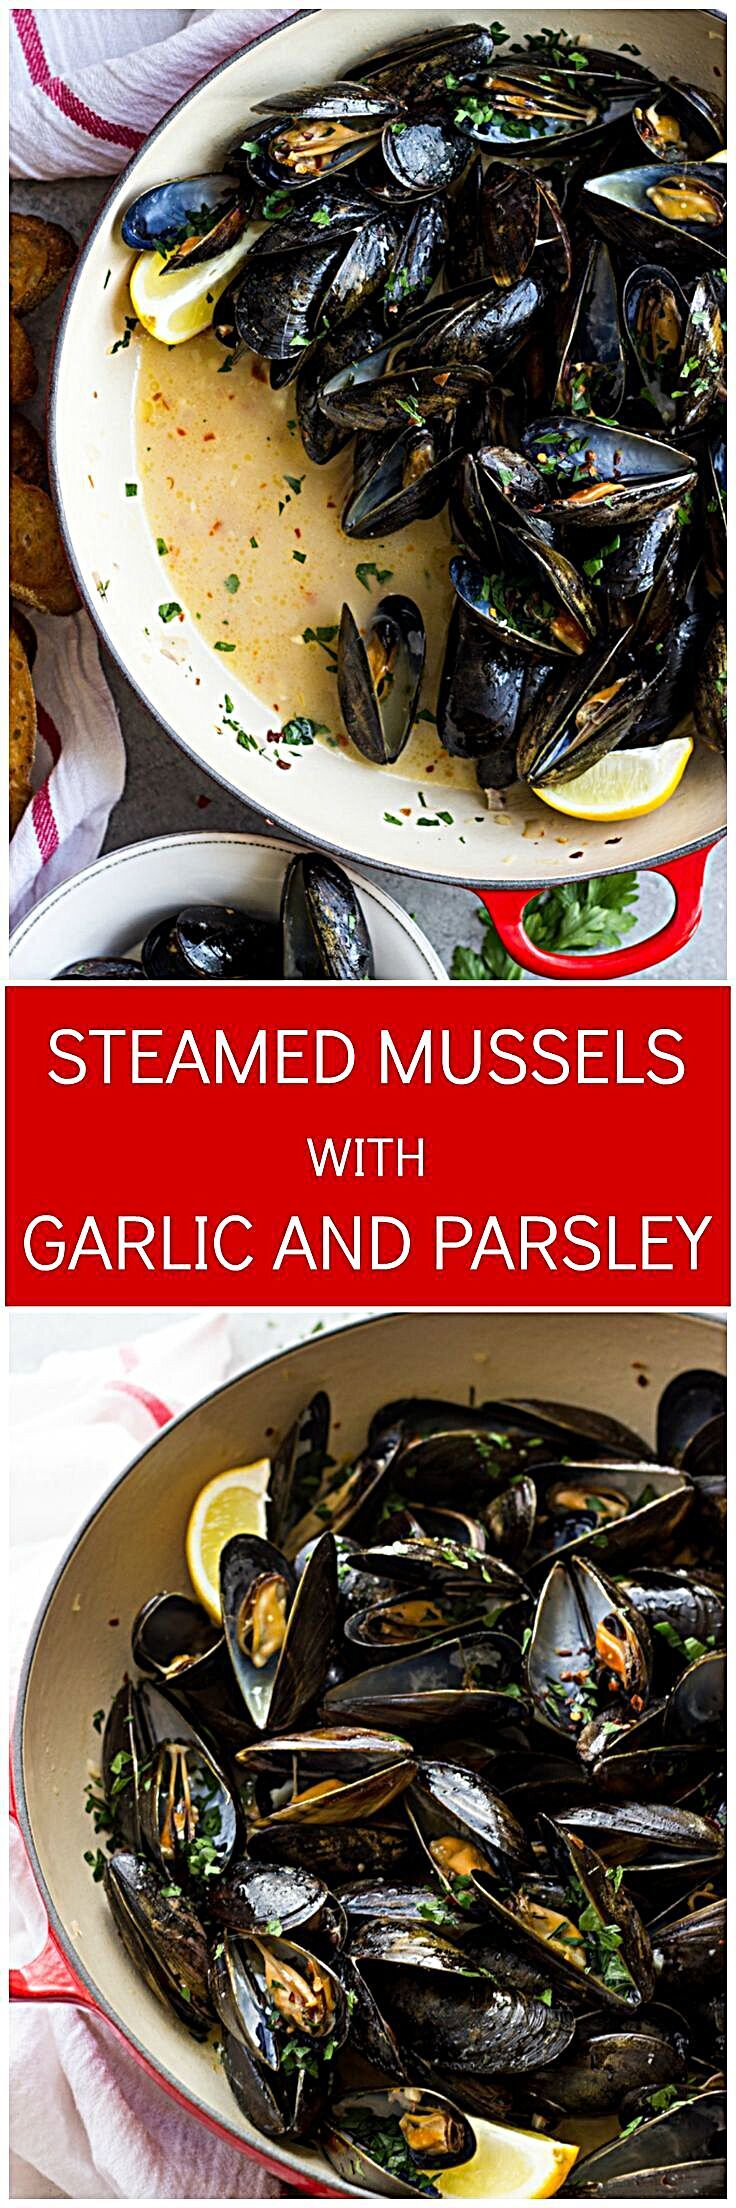 Steamed Mussels With Garlic And Parsley In 2020 Seafood Recipes Mussels Recipe Seafood Dishes